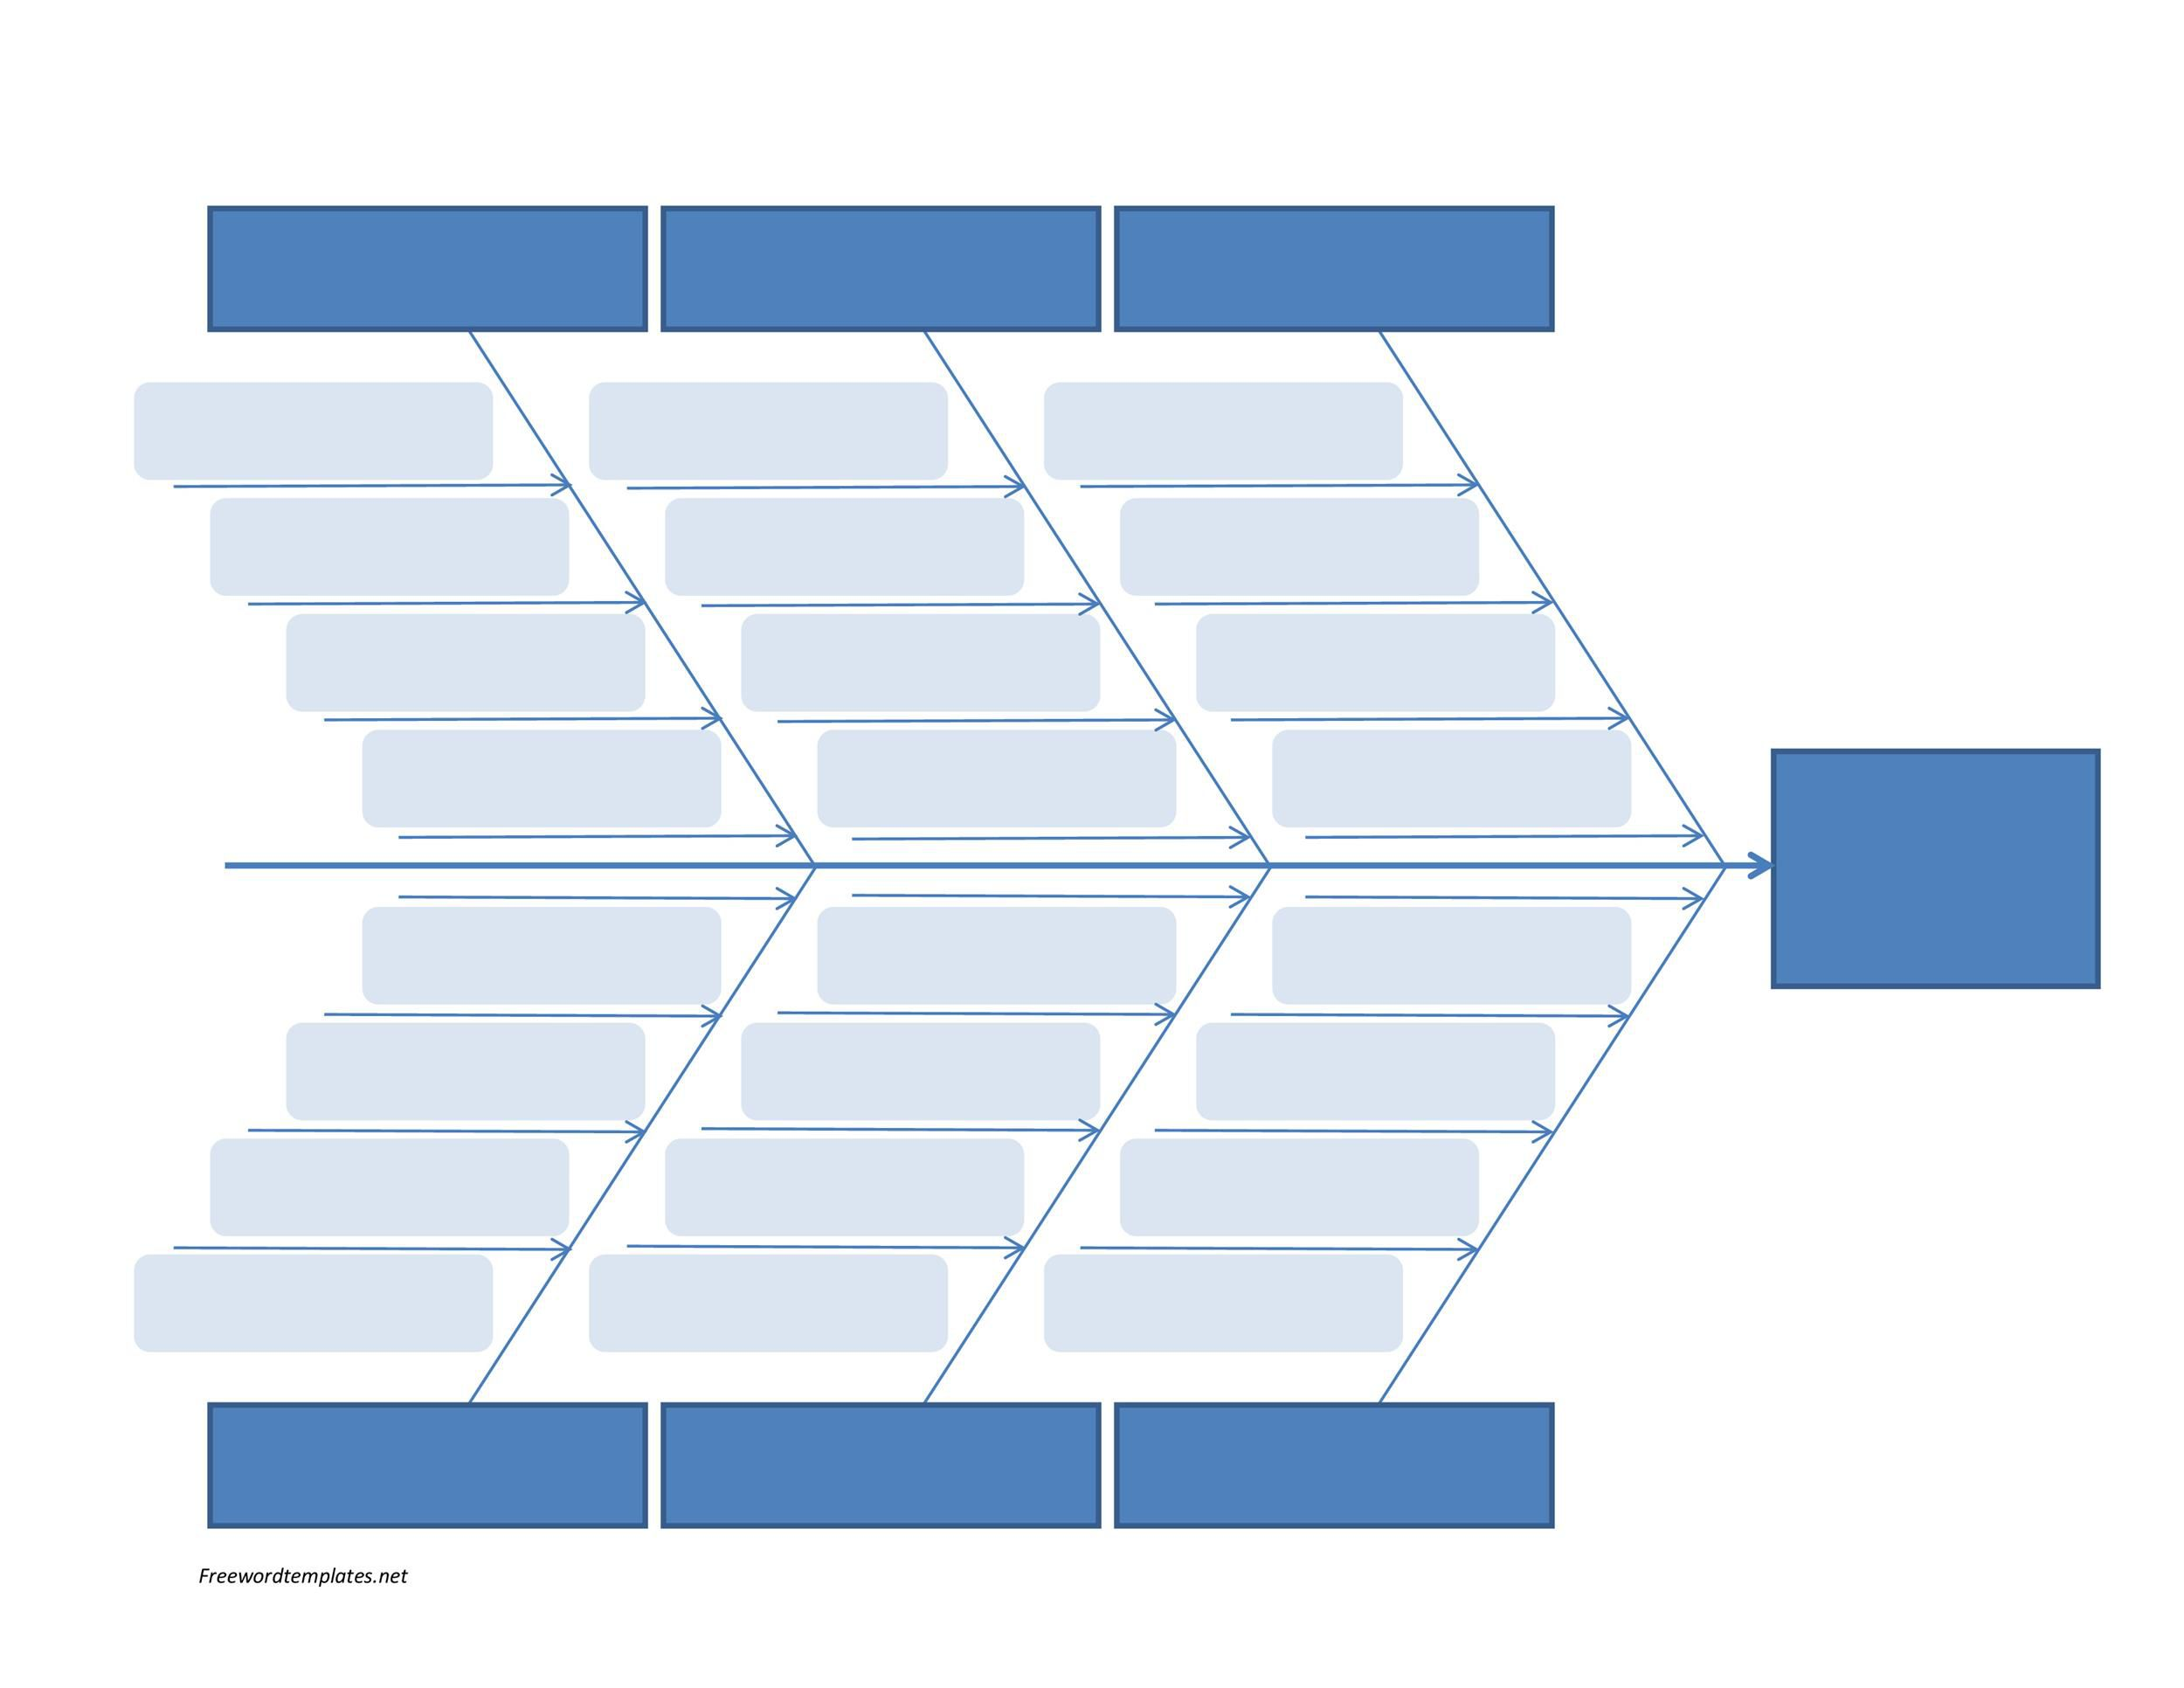 007 Shocking Blank Fishbone Diagram Template Image  Downloadable Word PdfFull